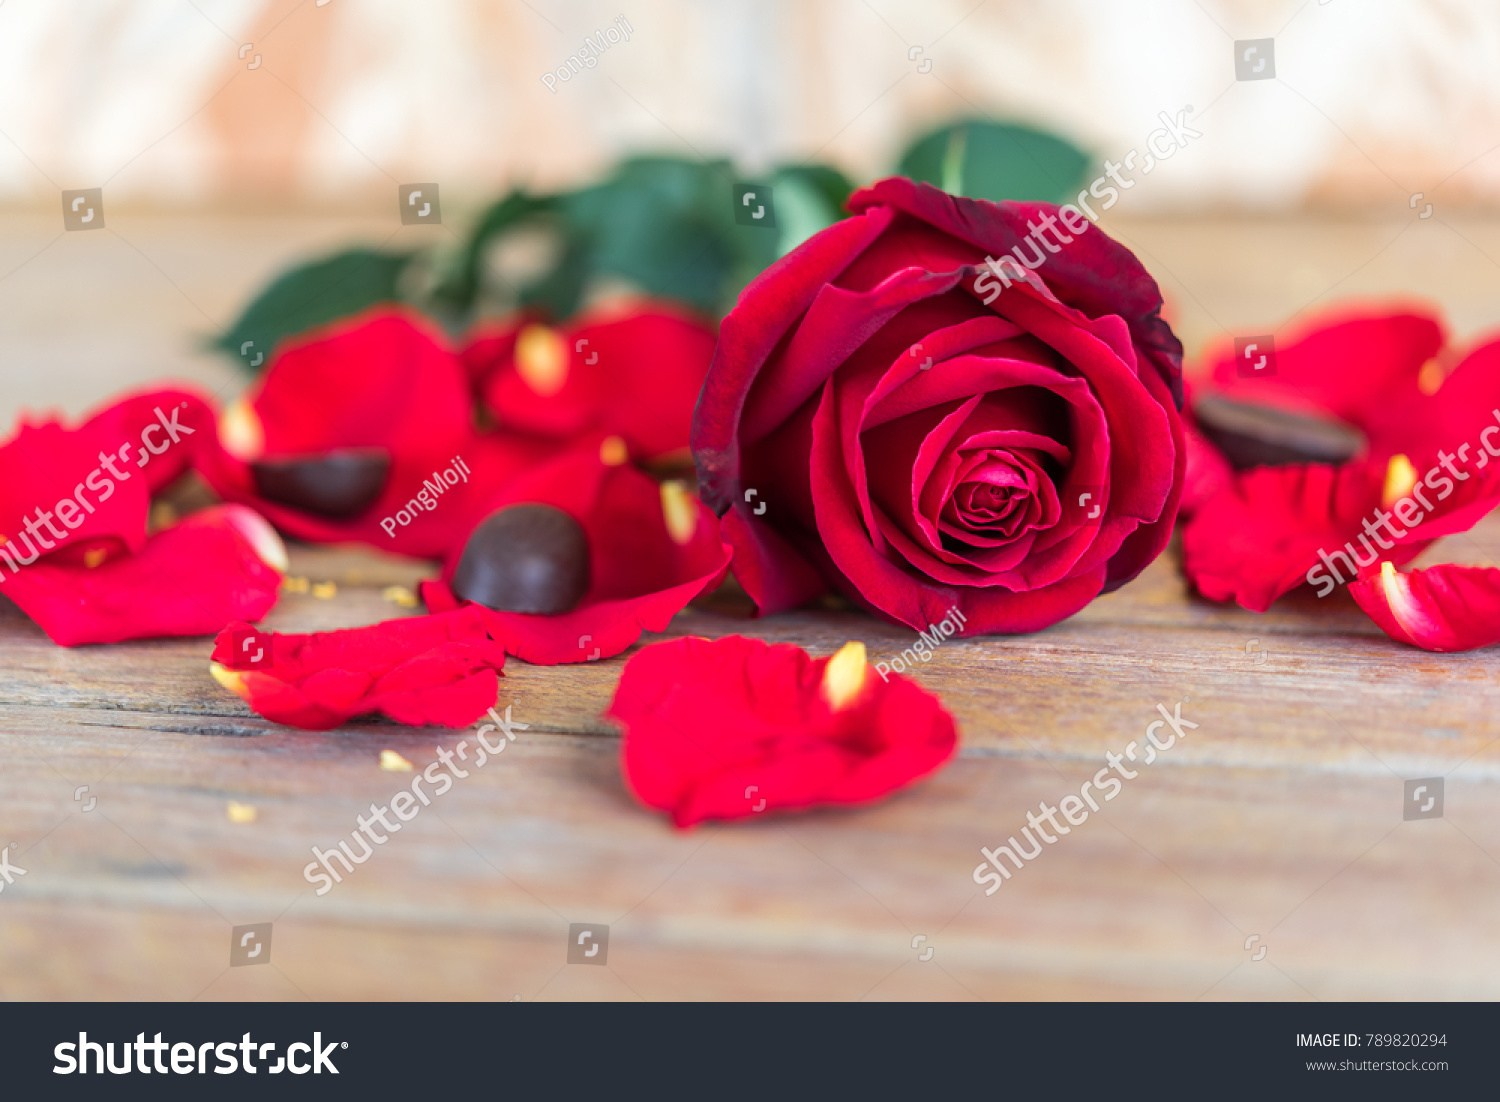 Red Rose Flower Nature Beautiful Flowers Stock Photo Edit Now